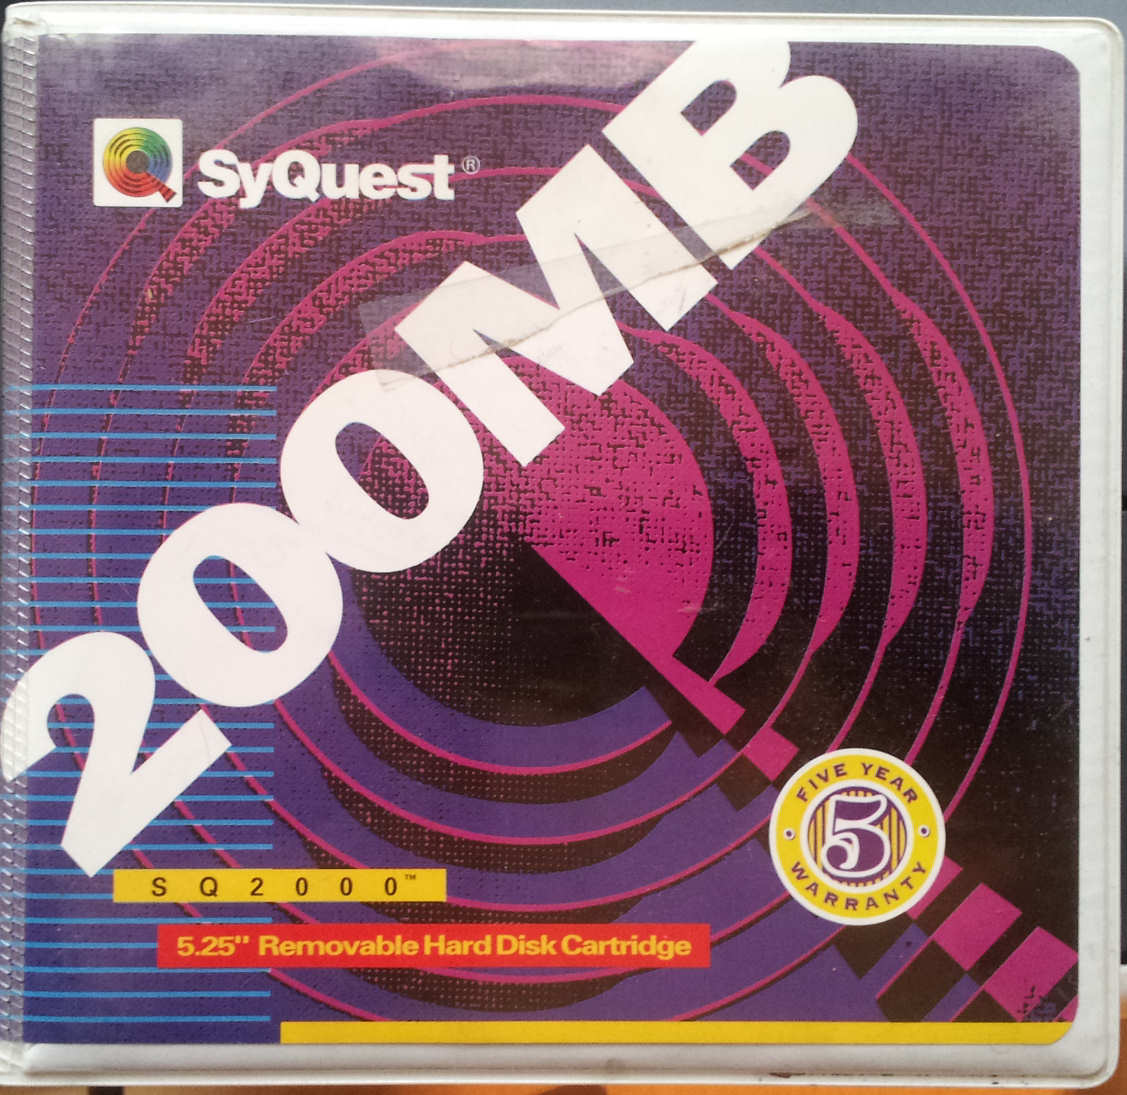 Syquest 200mb SQ2000 Hard Disk